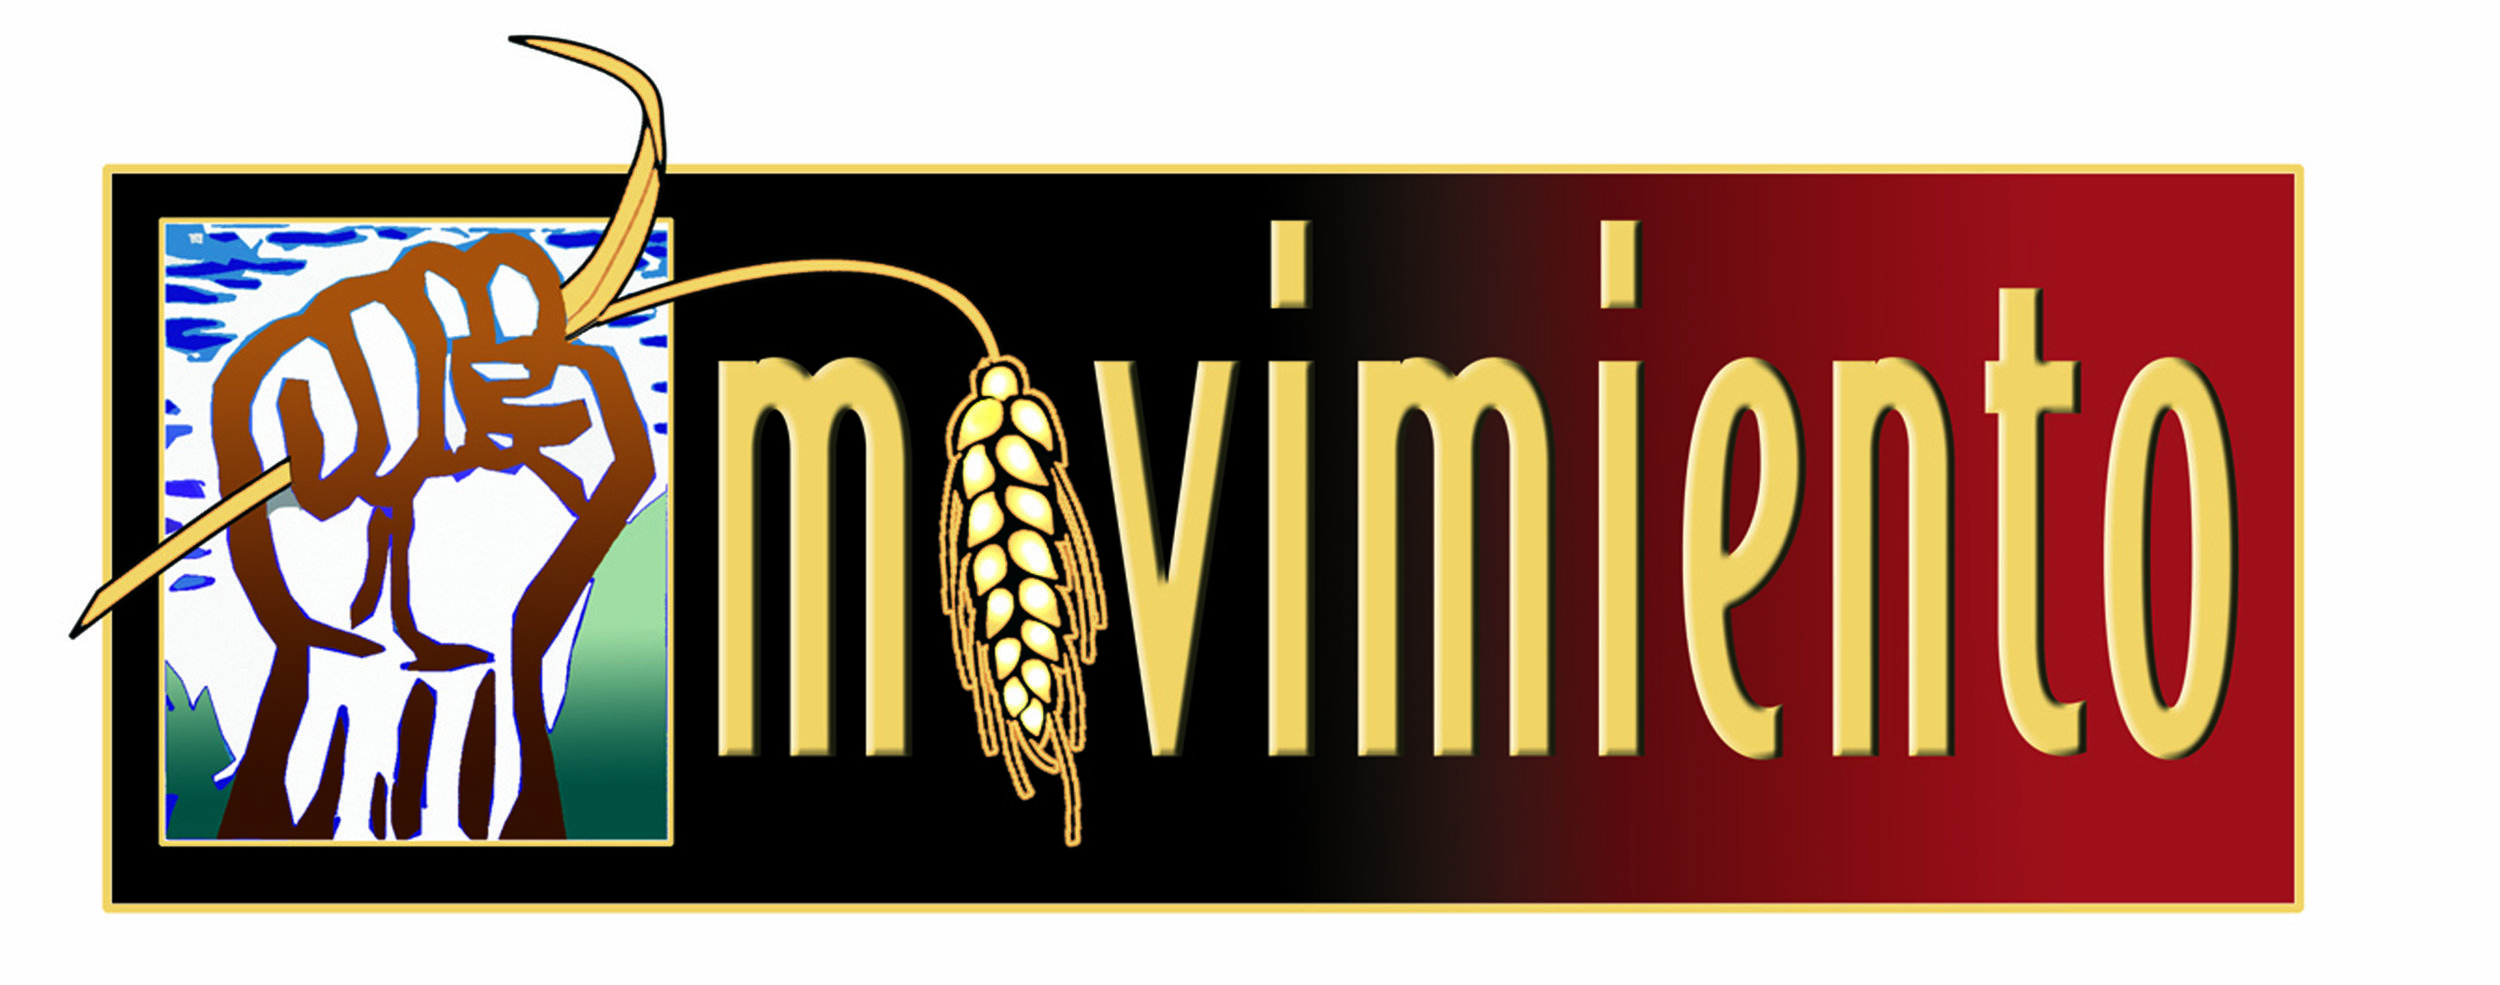 For more information about Movimiento click here